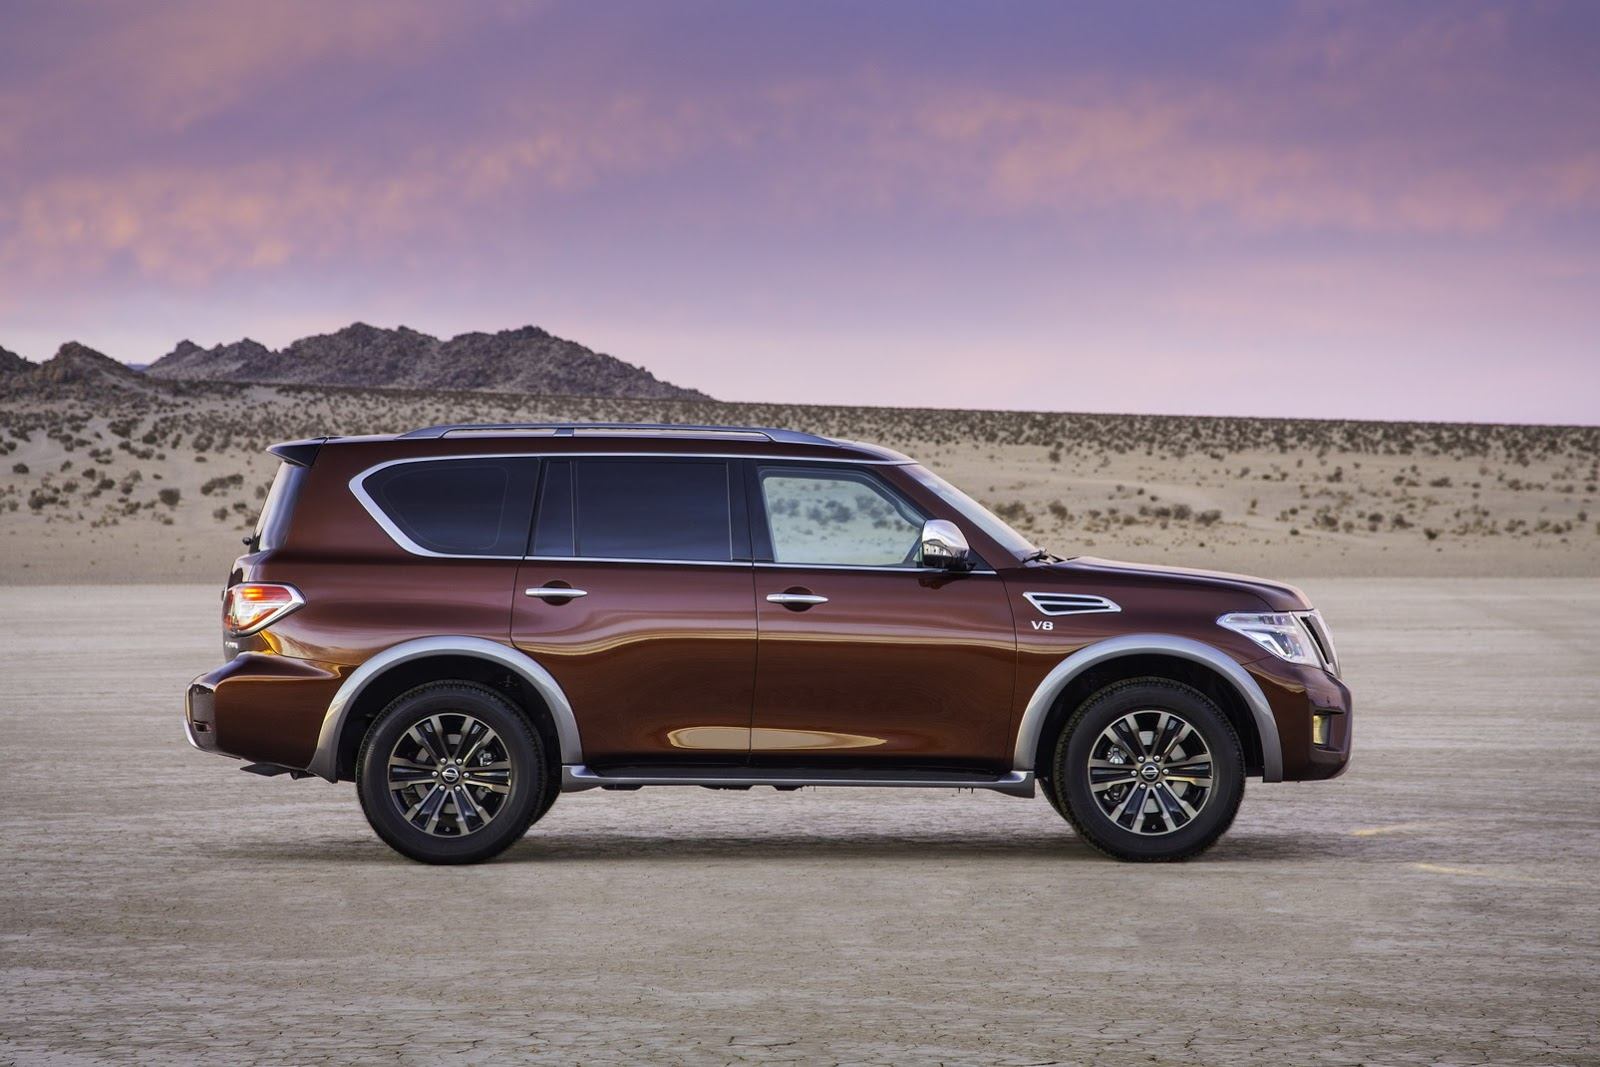 2017 Nissan Armada Is North America's Patrol Or The ...